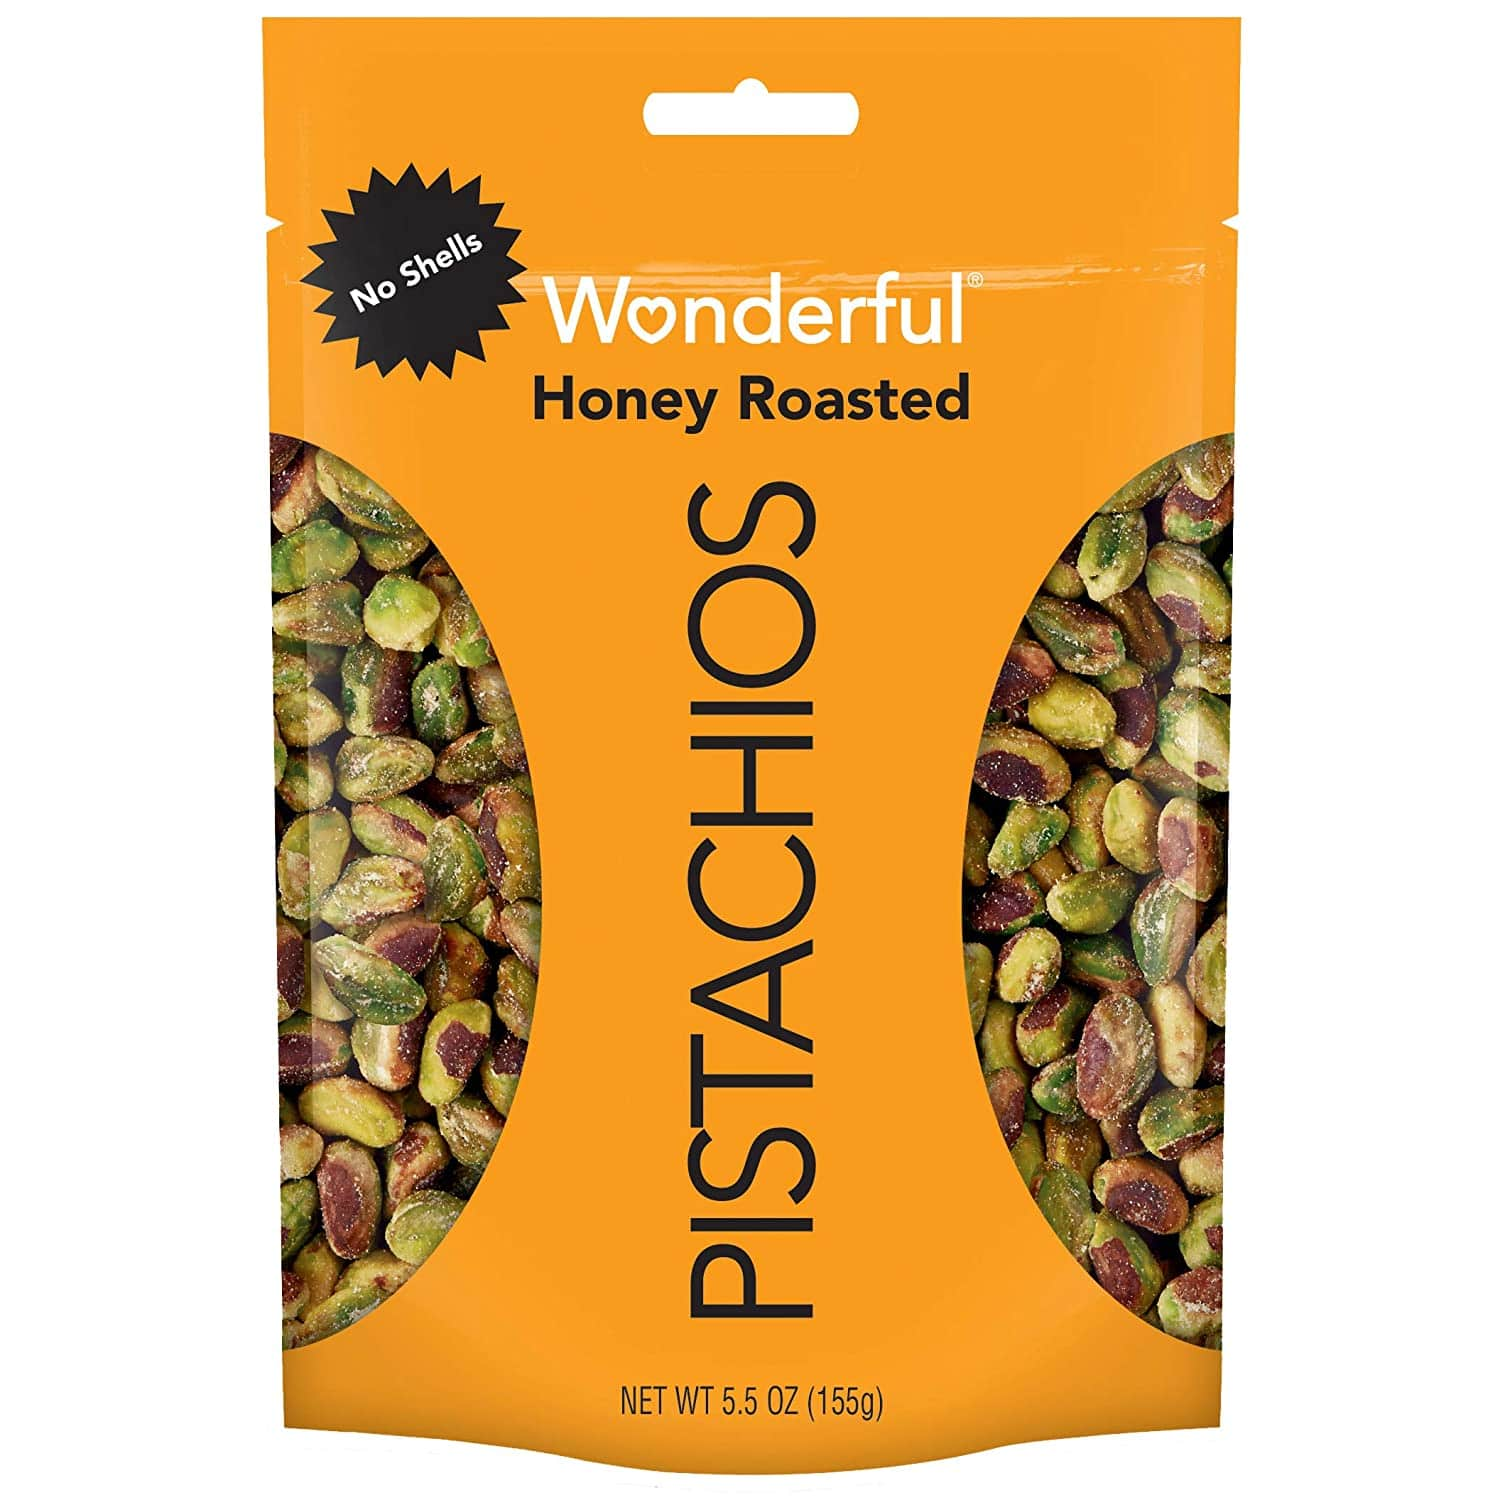 5.5-Oz Wonderful Pistachios (No Shells, Honey Roasted) $3.74 w/ S&S + Free Shipping w/ Prime or on $25+